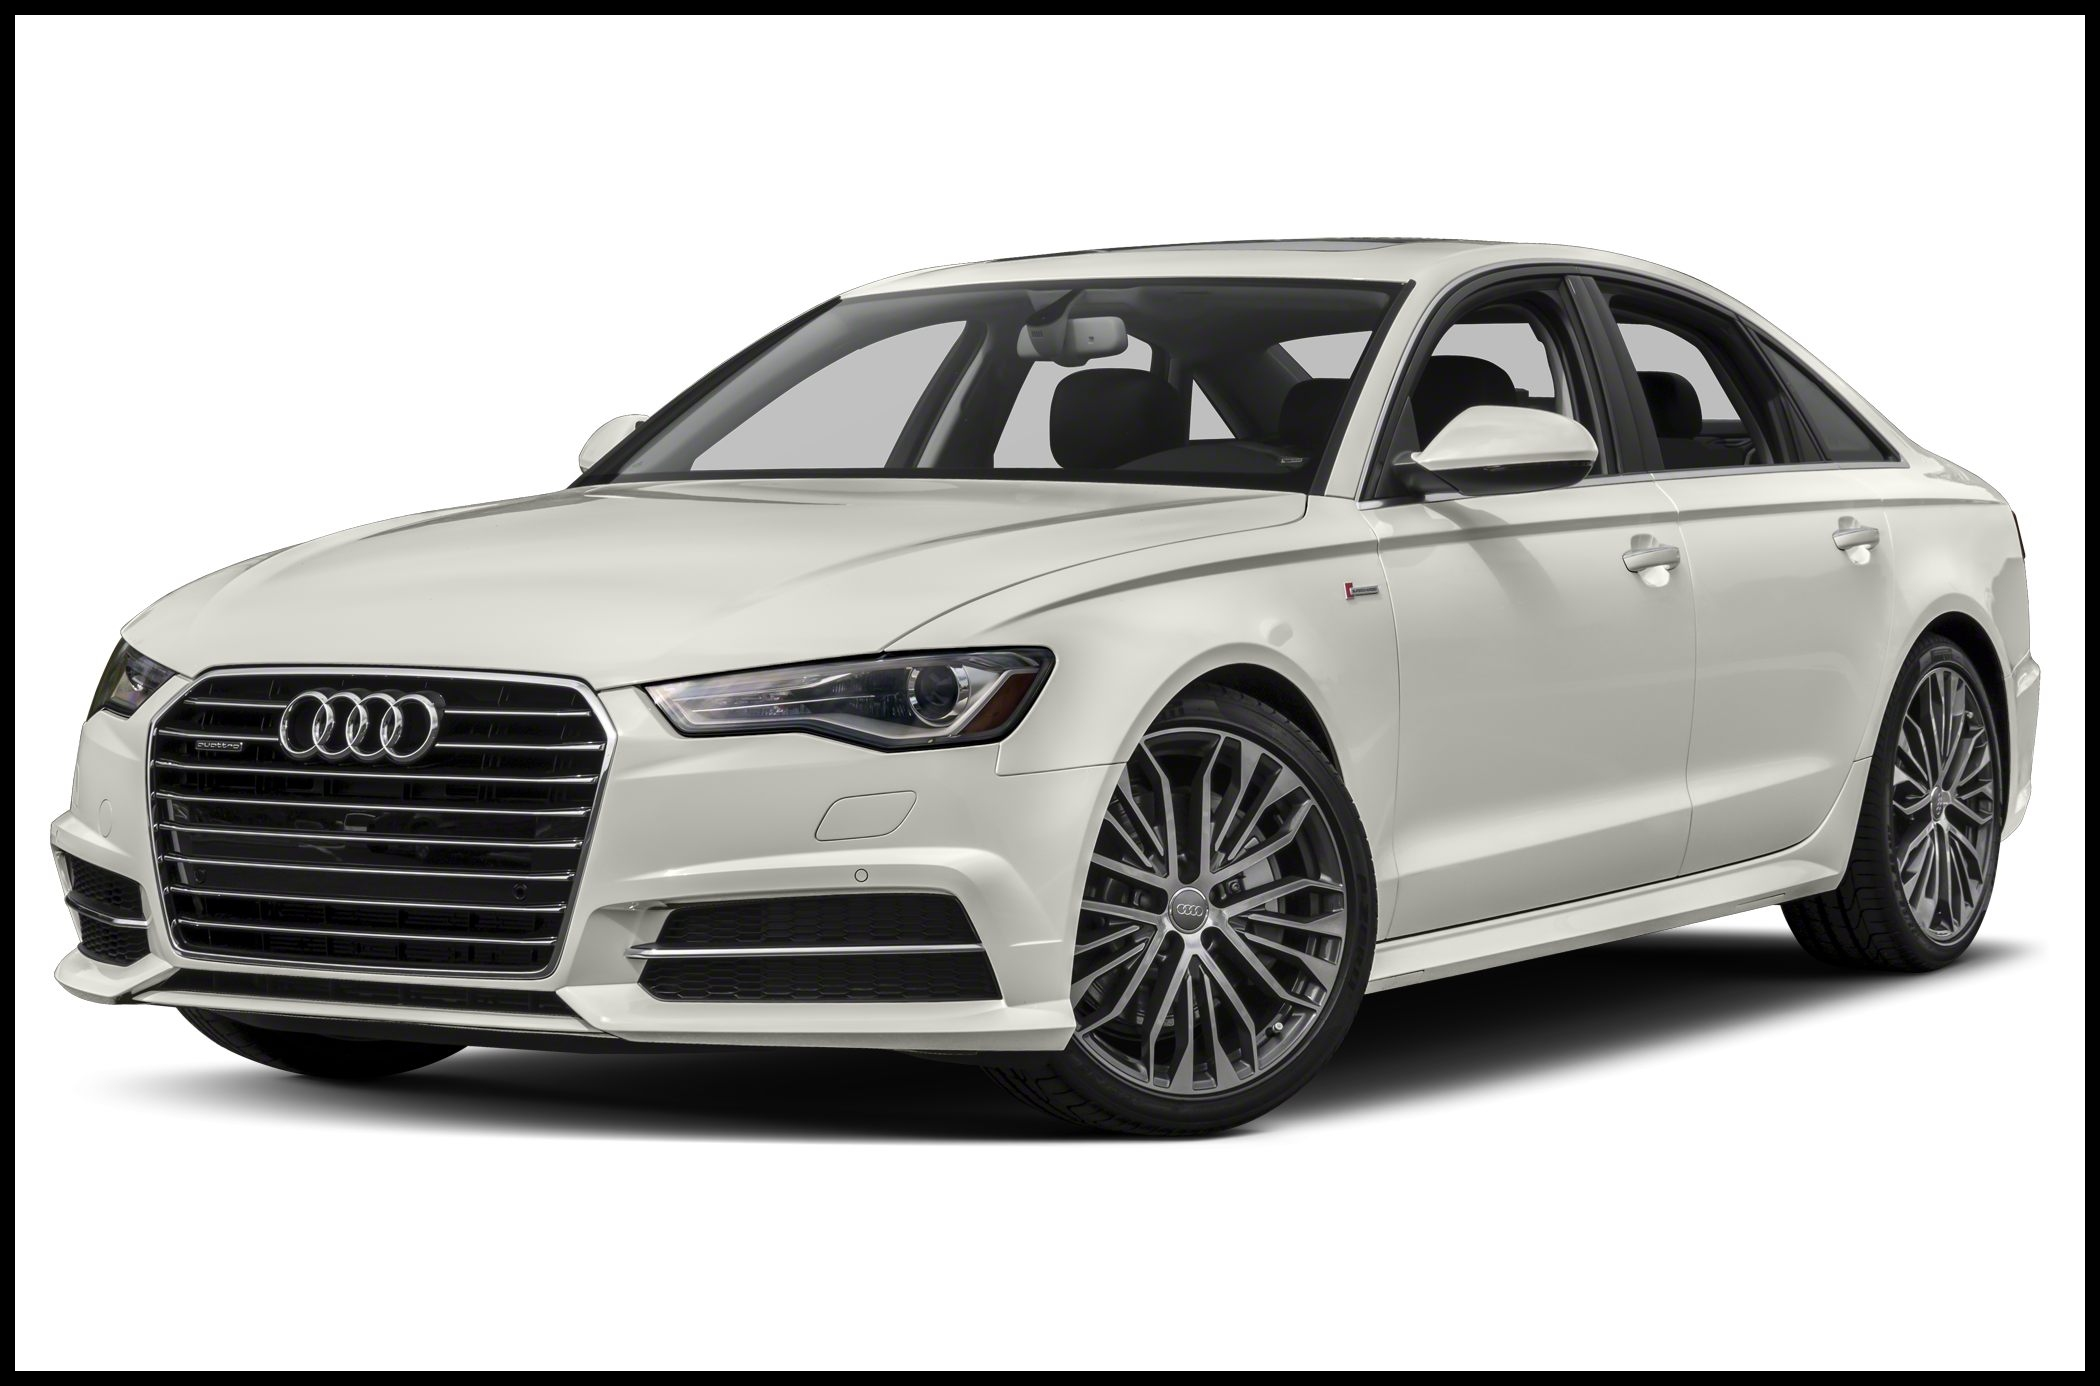 2016 Audi A6 3 0 TDI Premium Plus 4dr All wheel Drive quattro Sedan Pricing and Options